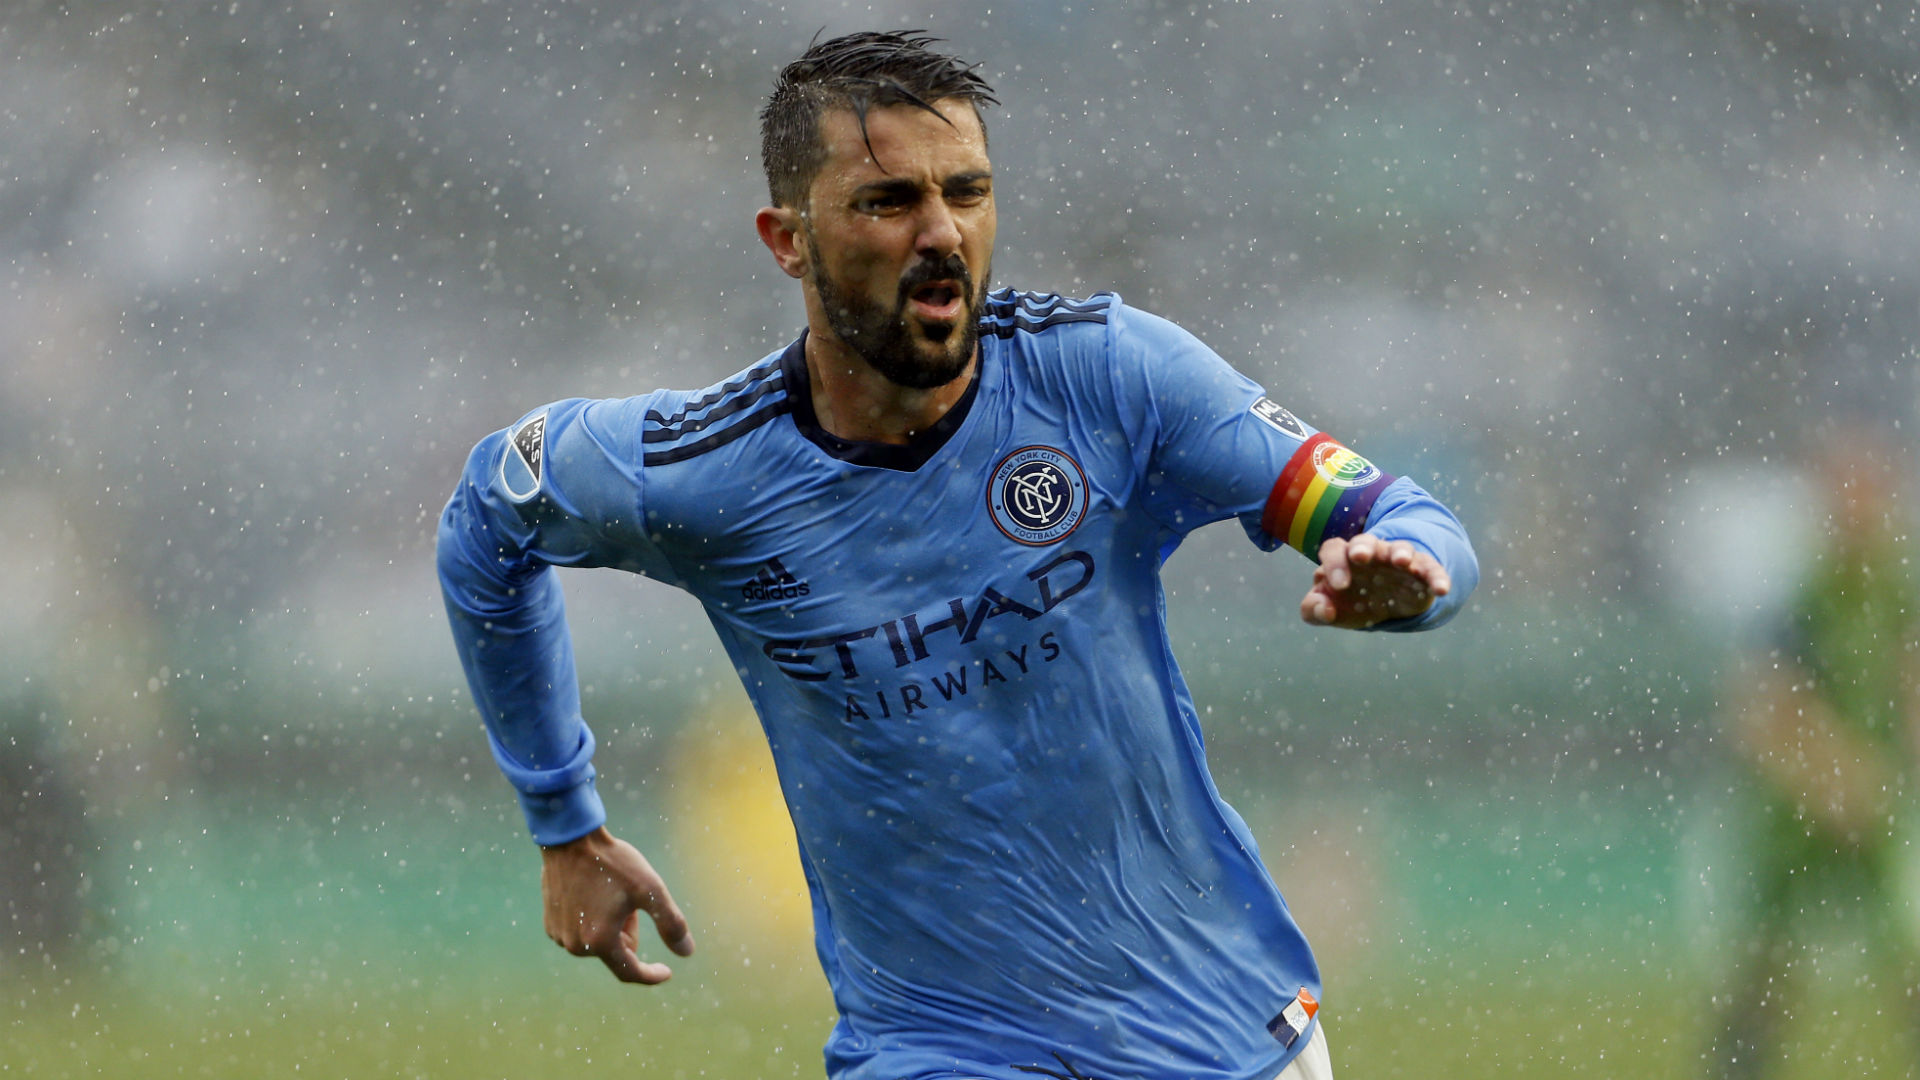 Villa shines in the rain with double to reach 50 goals in MLS